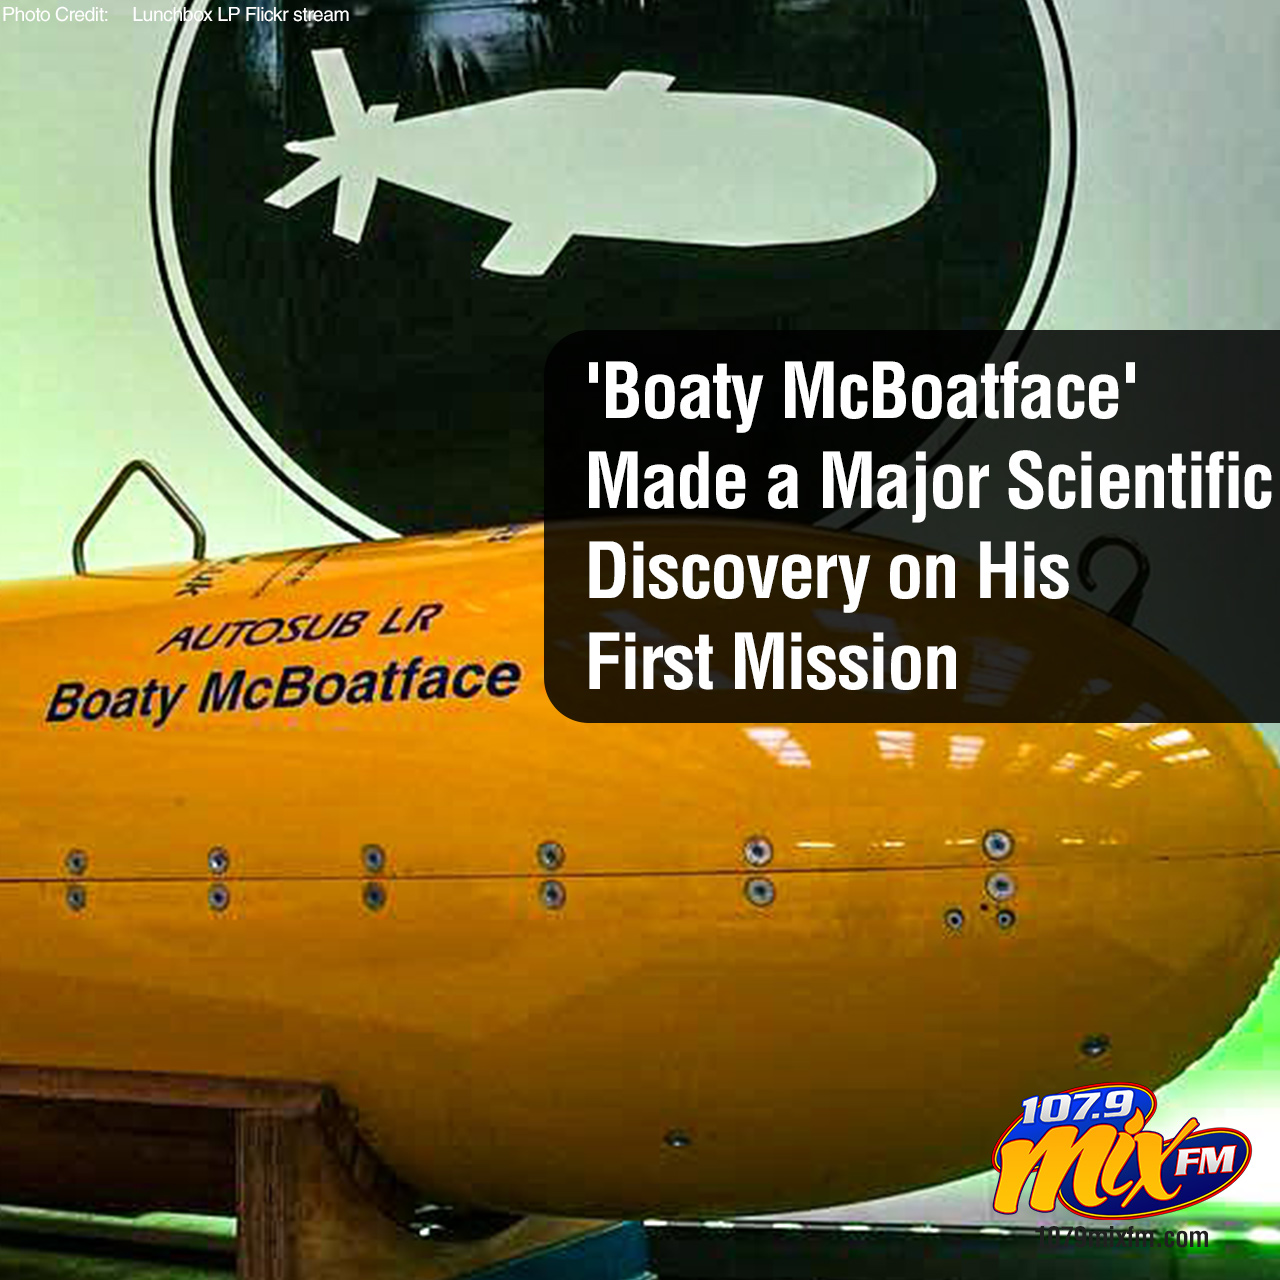 'Boaty McBoatface' Made a Major Scientific Discovery on His First Mission